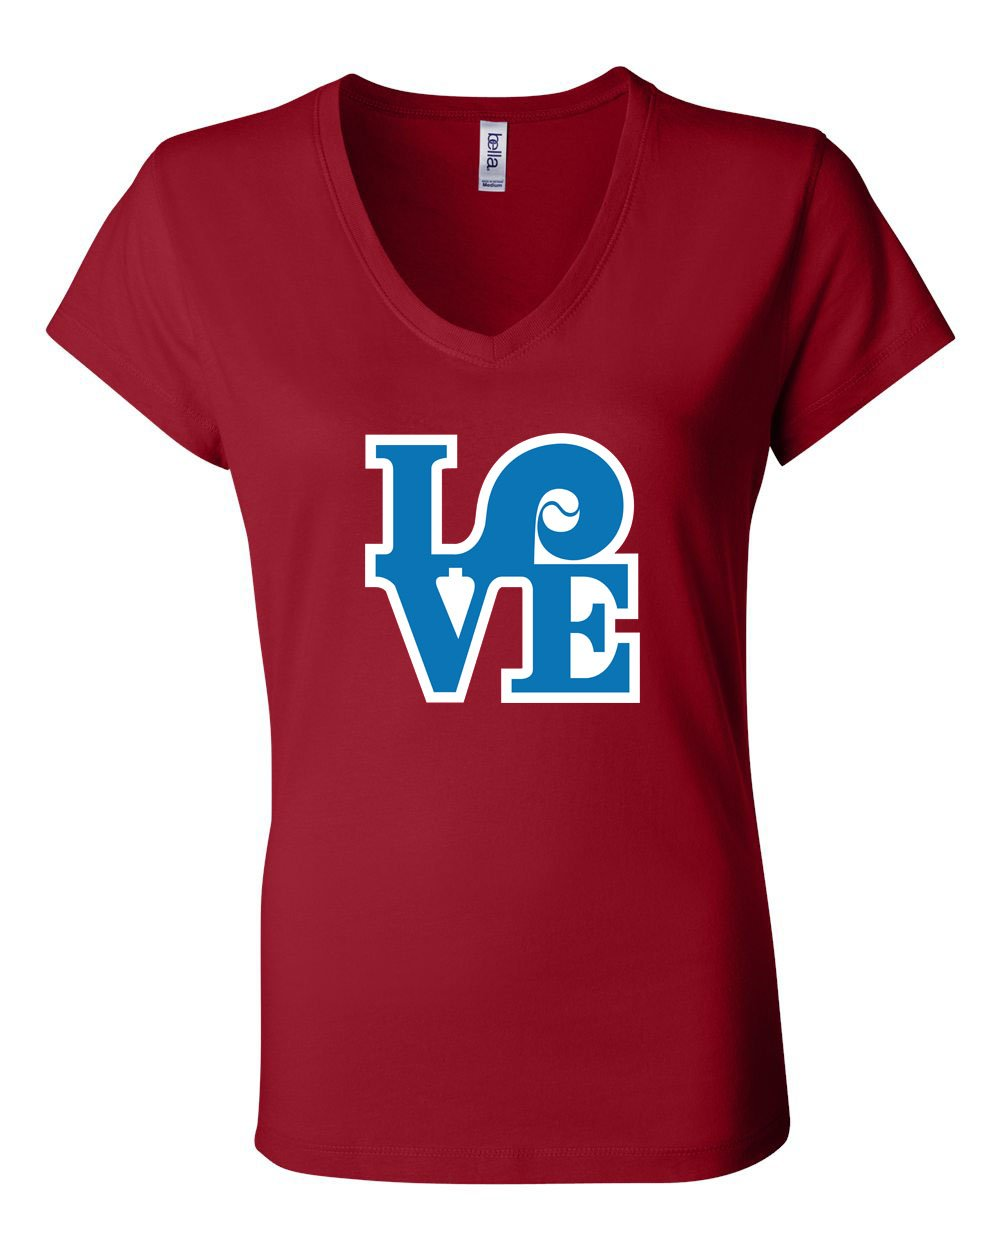 Love Red LADIES Junior Fit V-Neck